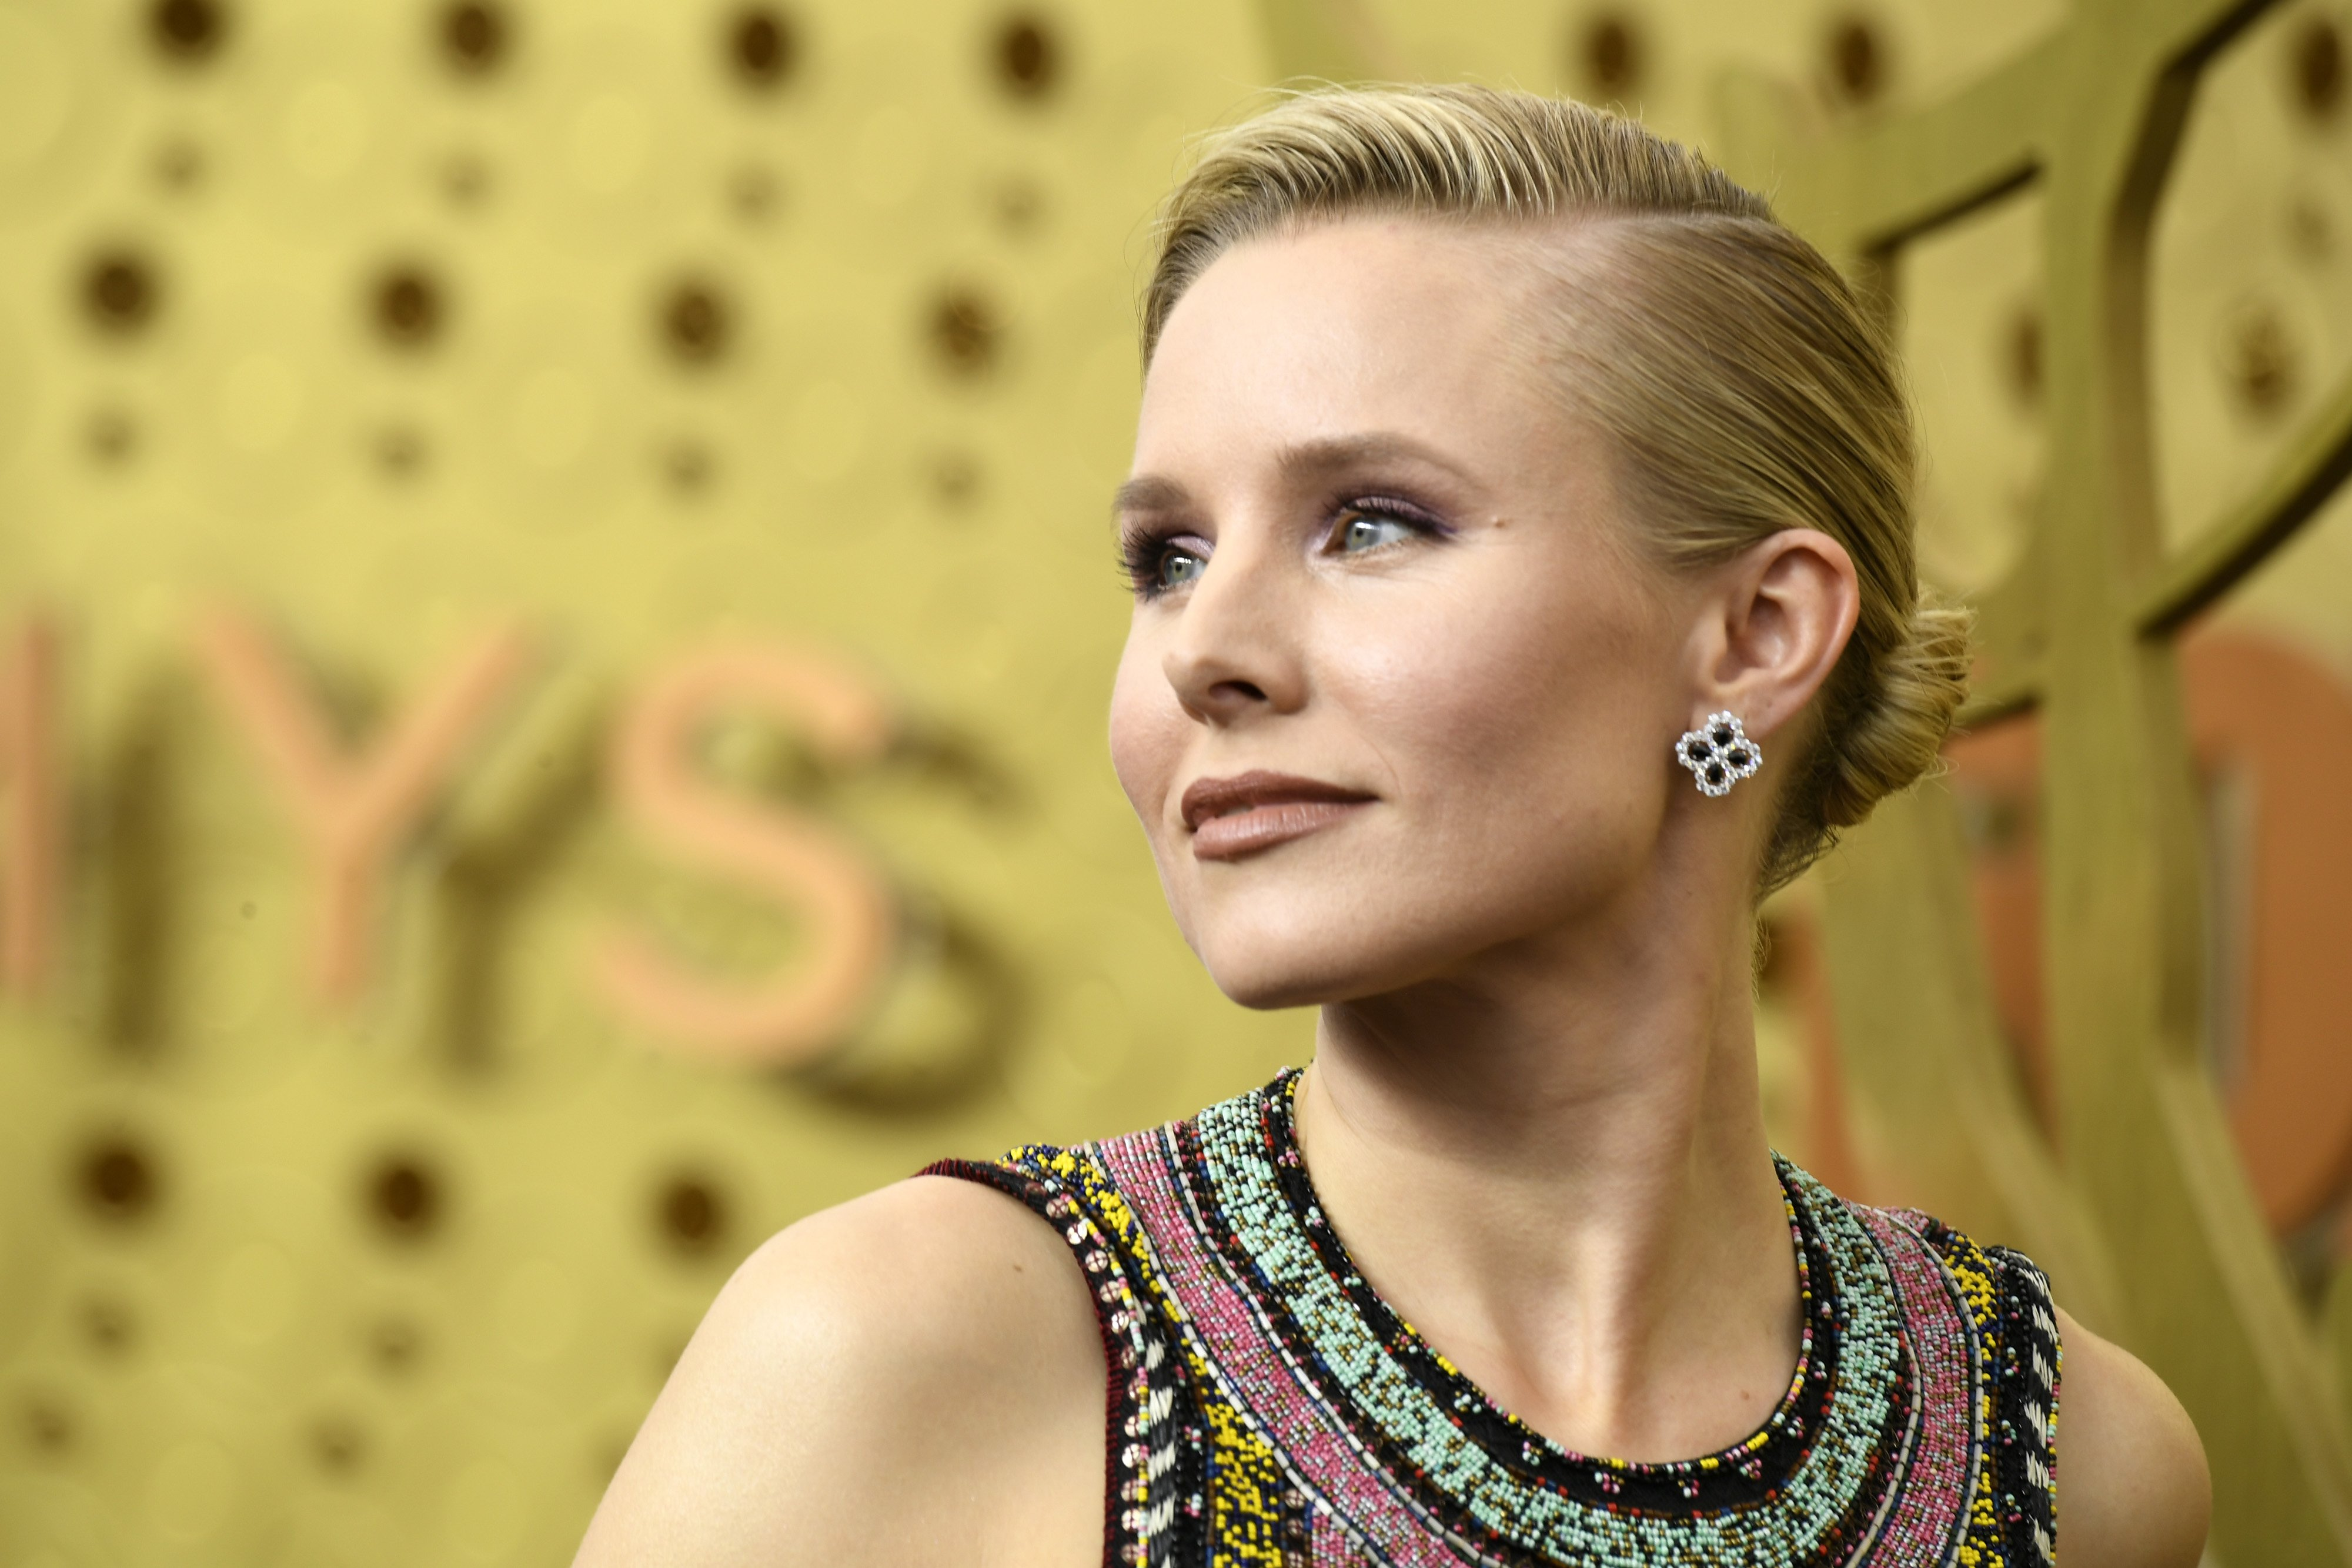 Image Credits: Getty Images / Frazer Harrison | Kristen Bell attends the 71st Emmy Awards at Microsoft Theater on September 22, 2019 in Los Angeles, California.